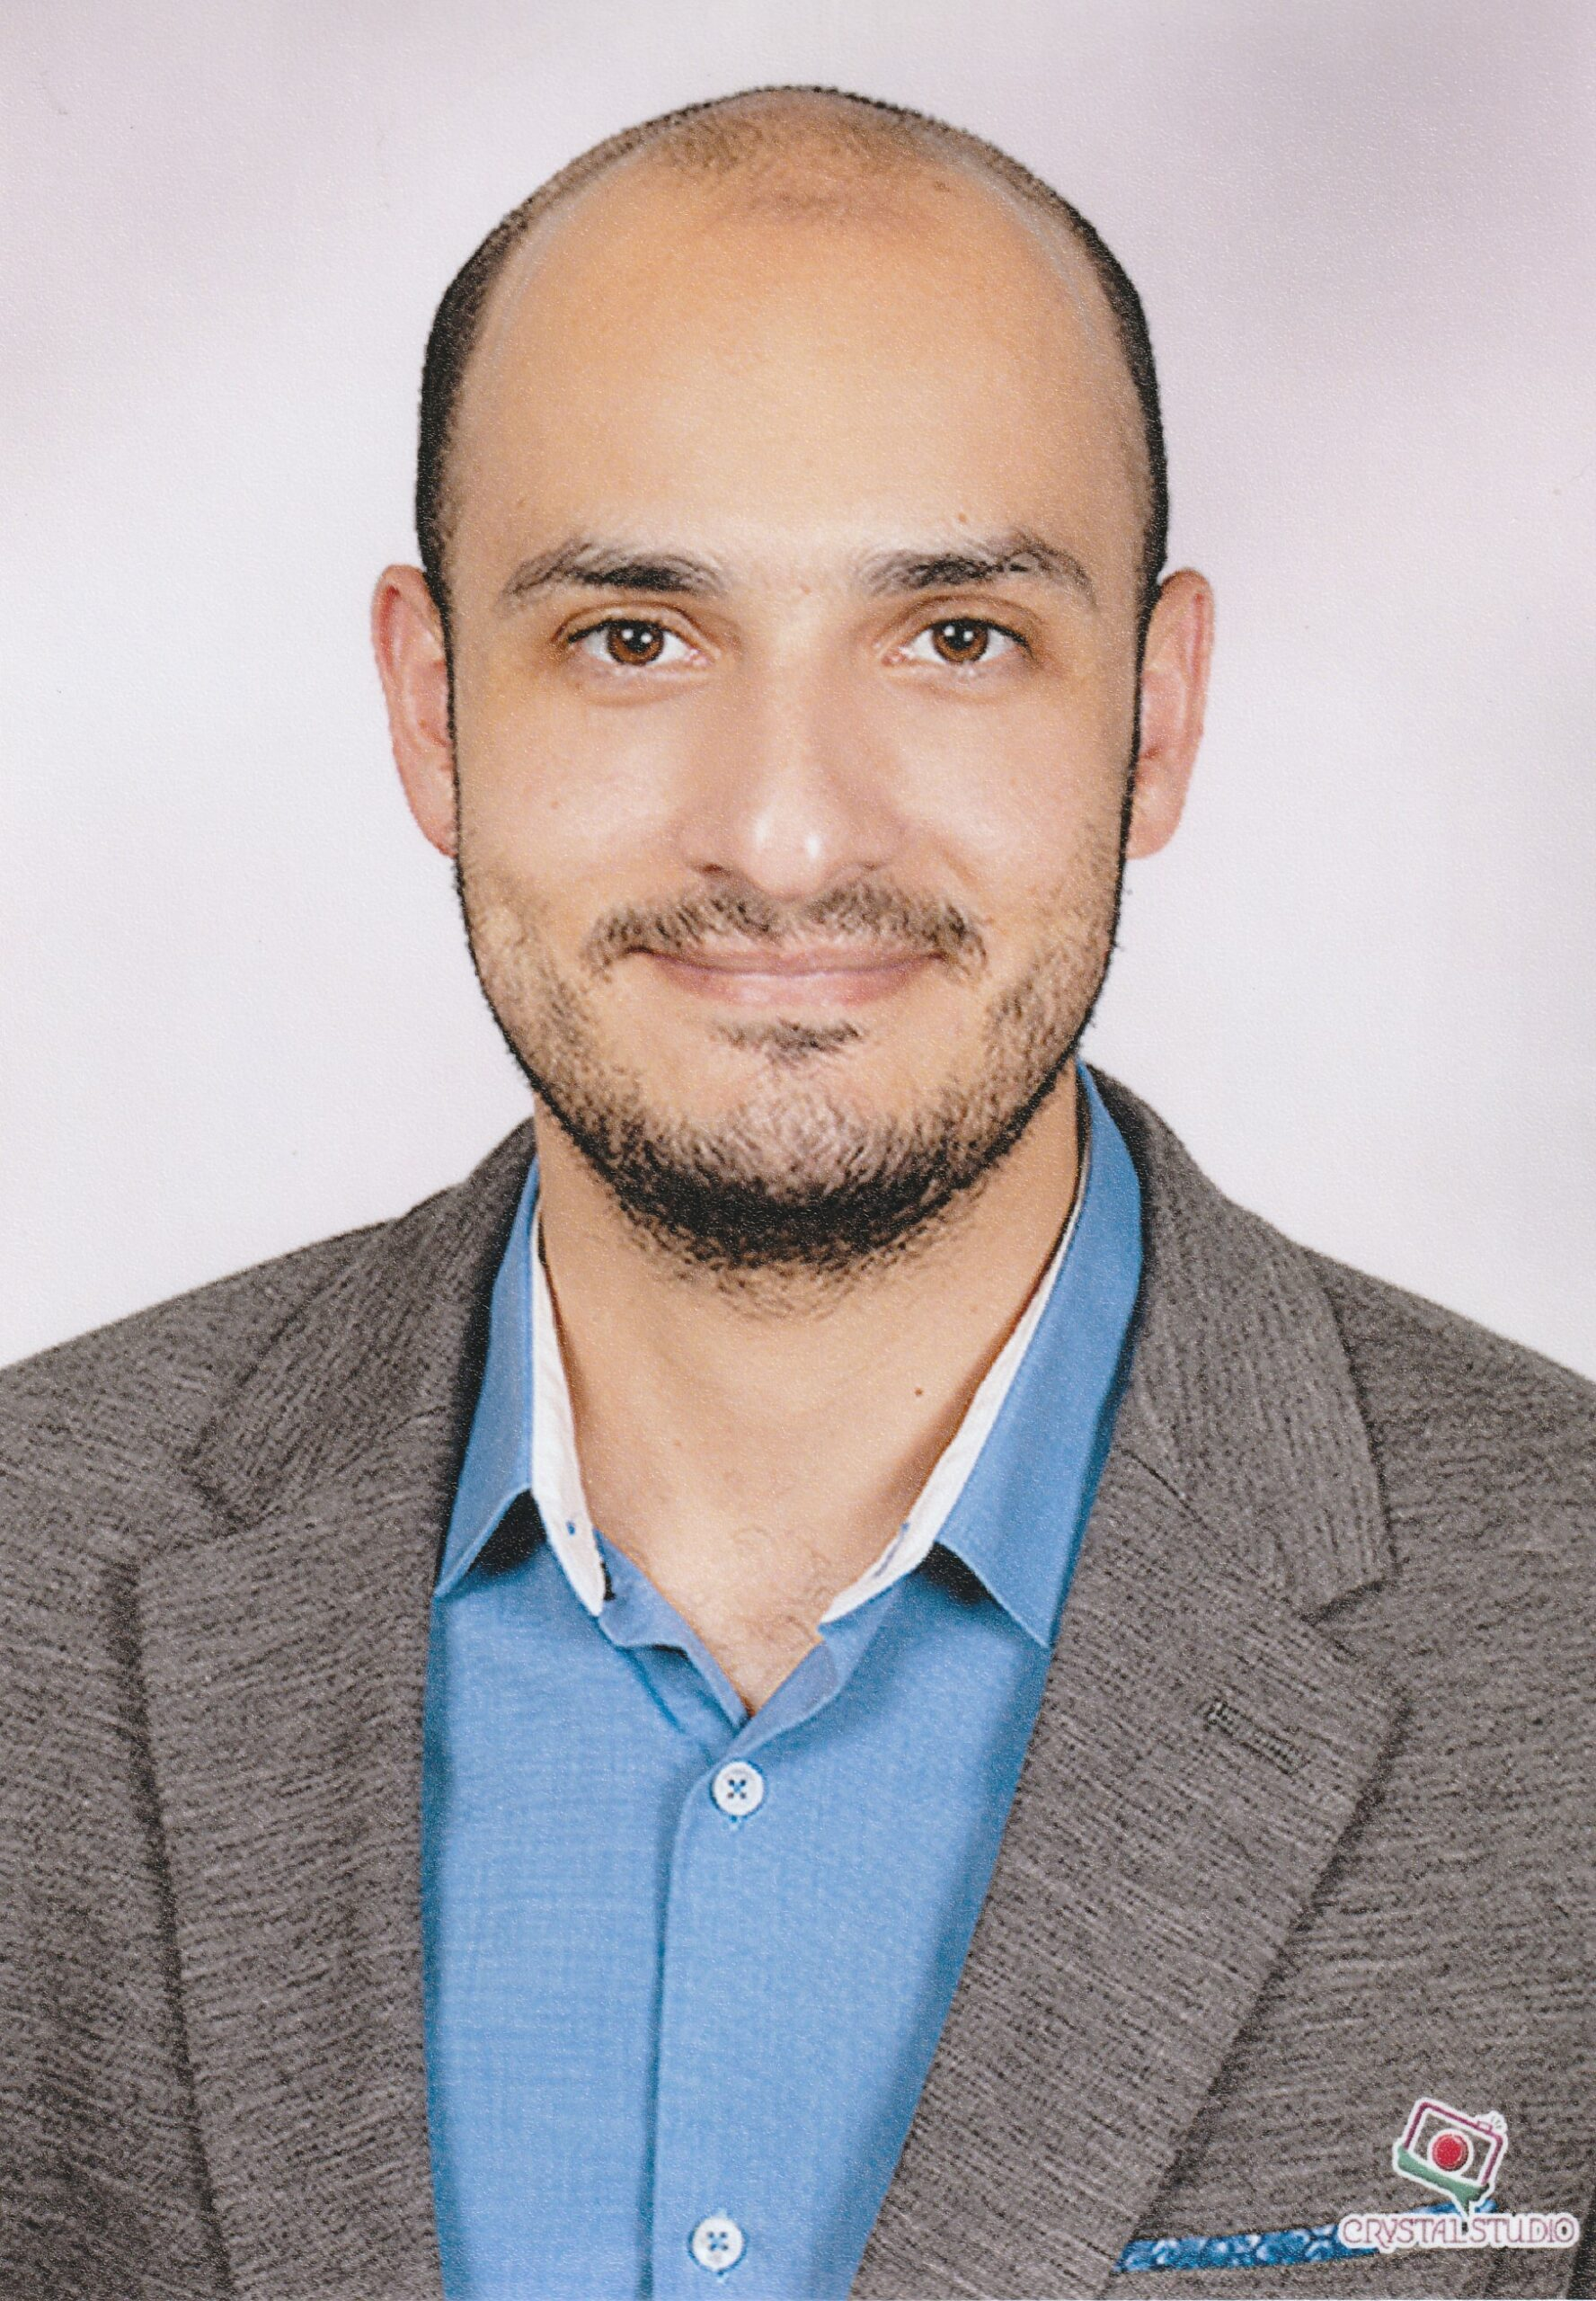 Dr Maged Hassan - profile image